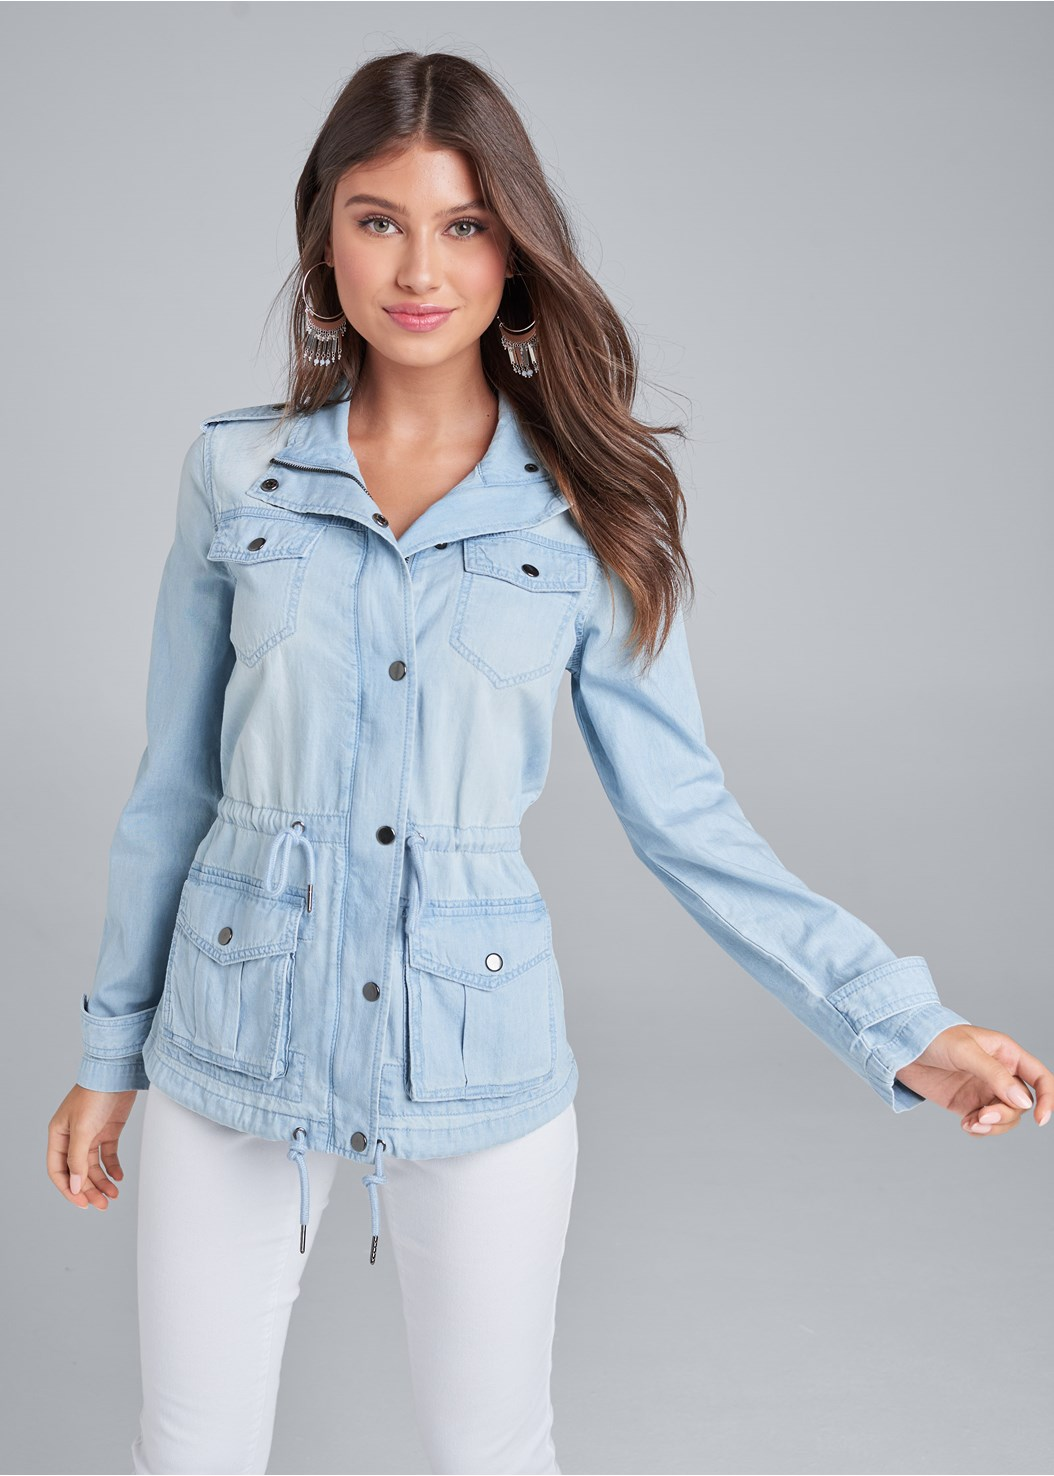 Jean Cargo Jacket,Basic Cami Two Pack,Color Capri Jeans